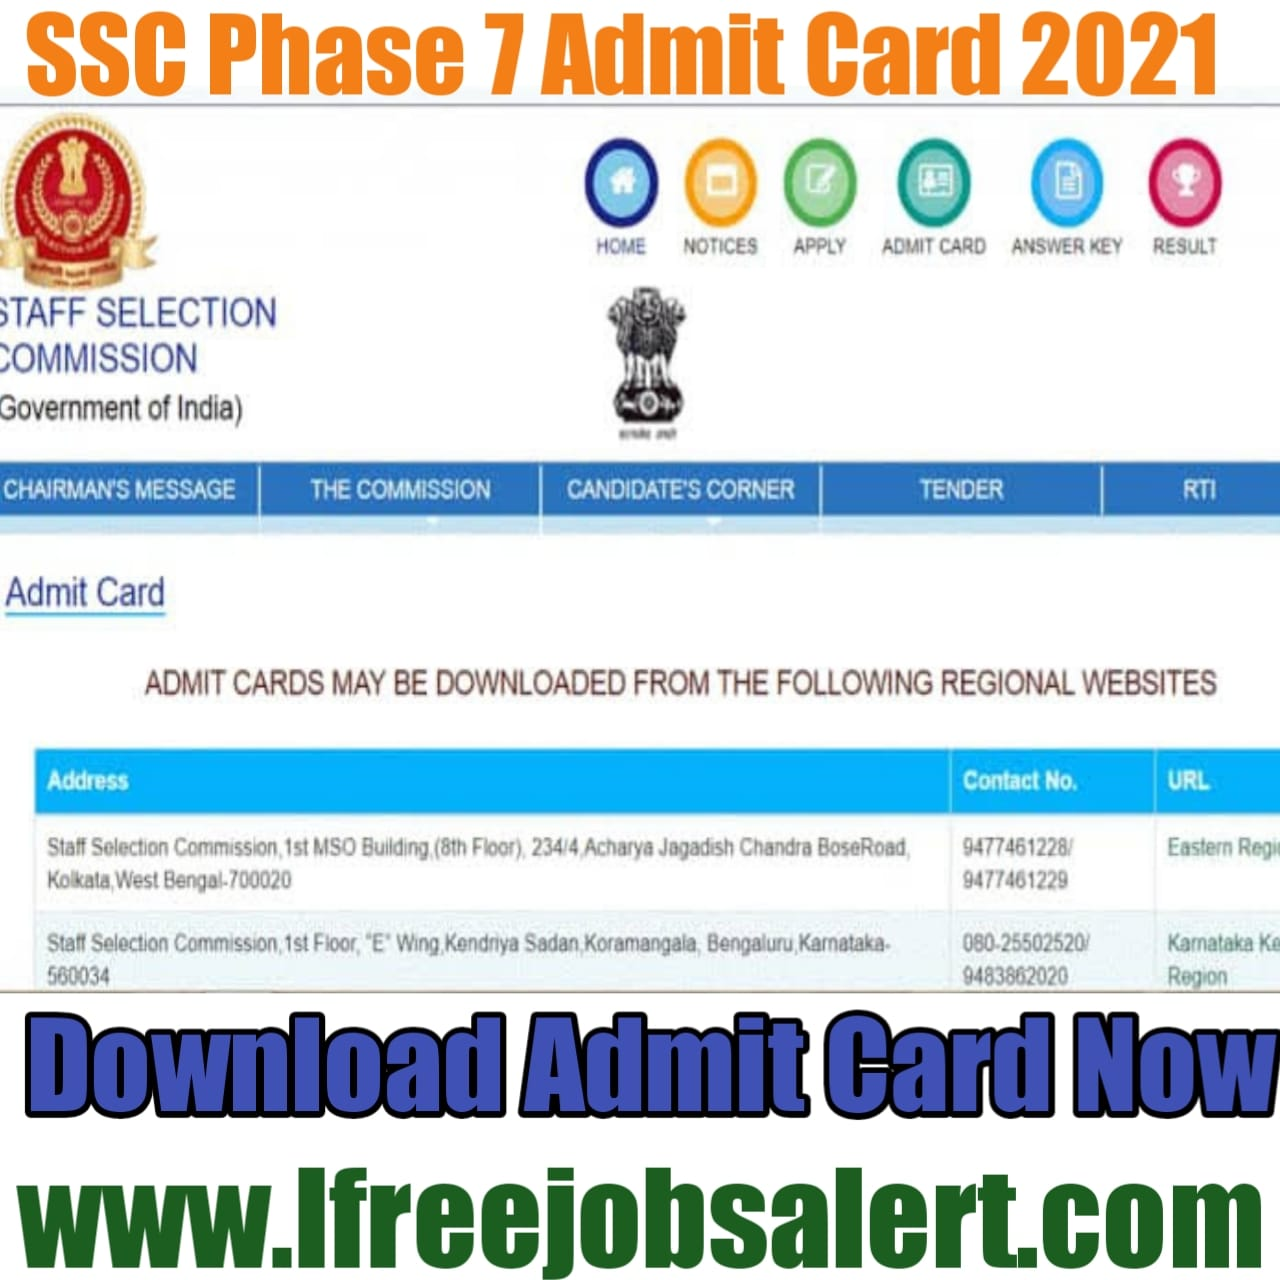 SSC Phase 7 admit card